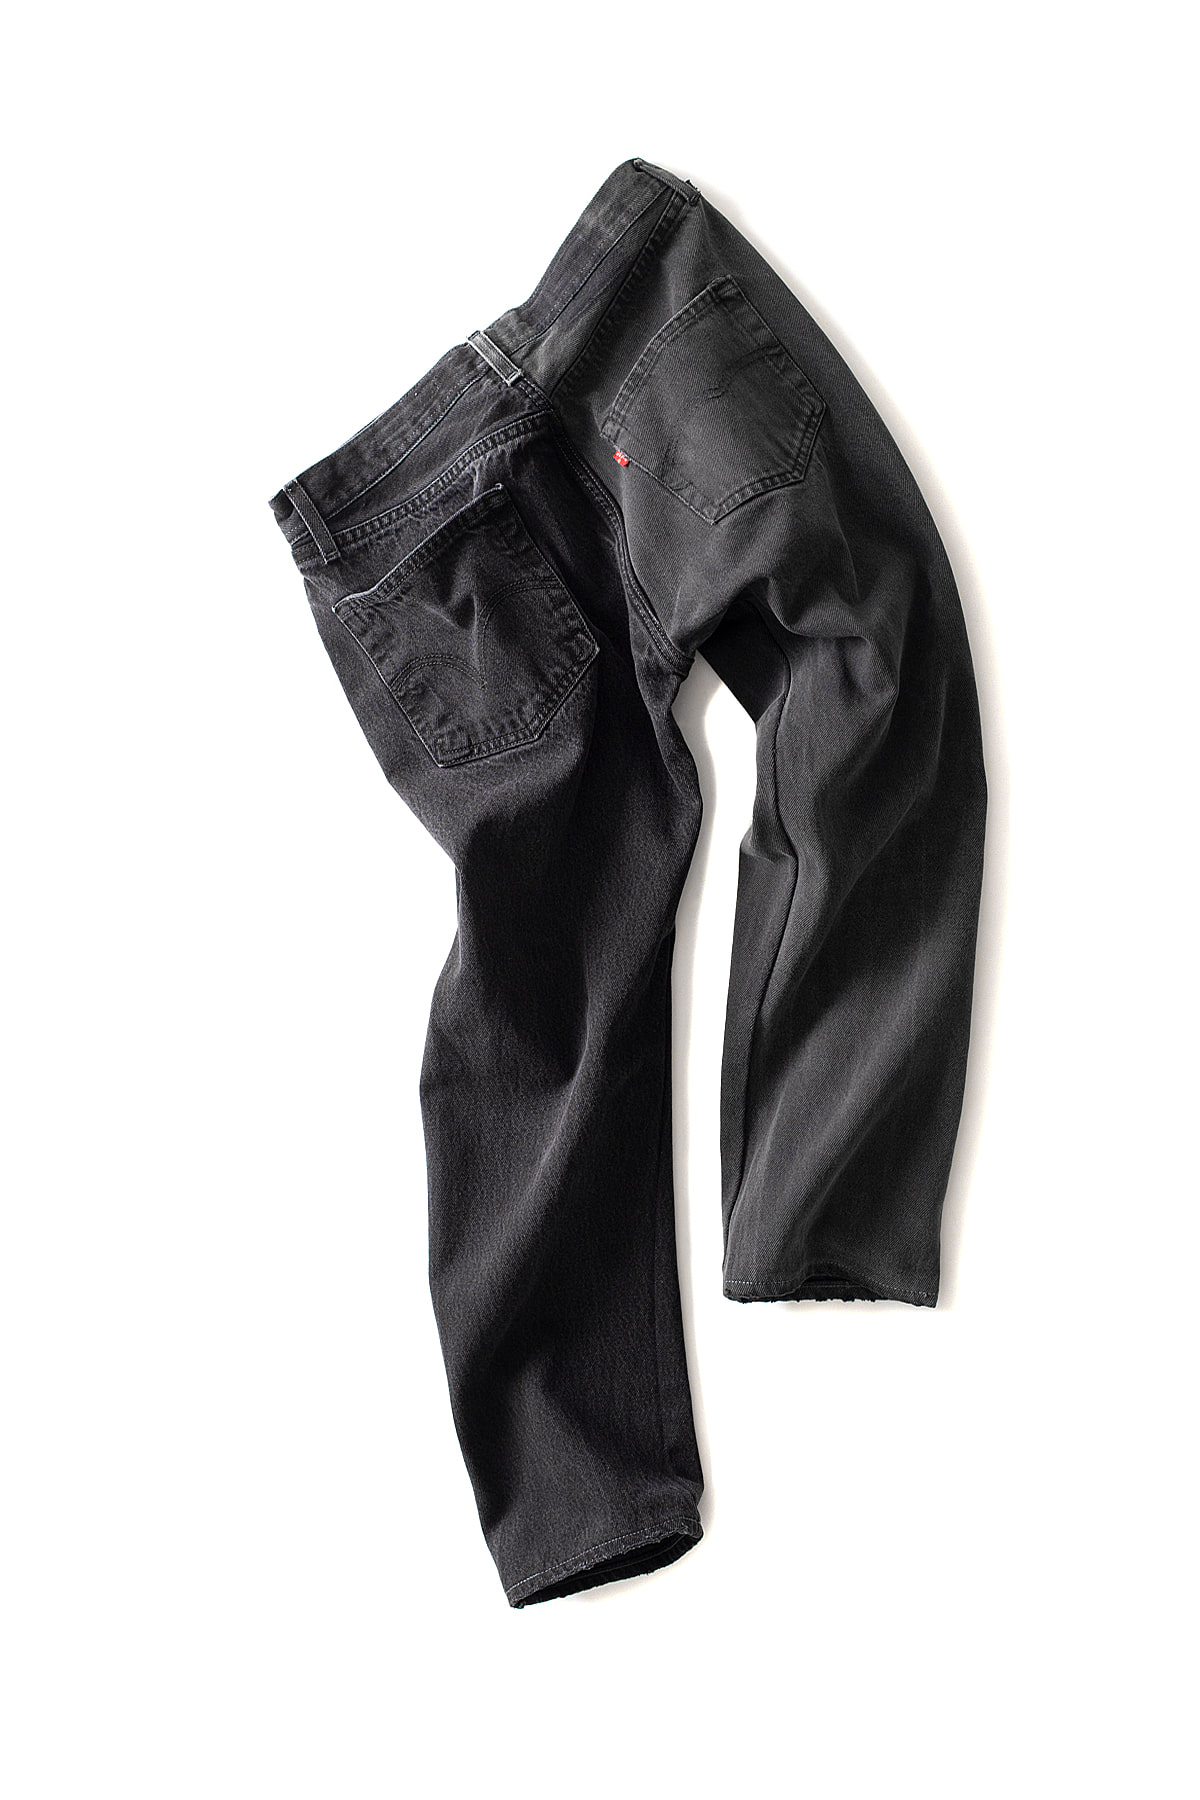 MADE by Sunny Side up : 2Forl Denim 5P Pants 3Size Black (A)